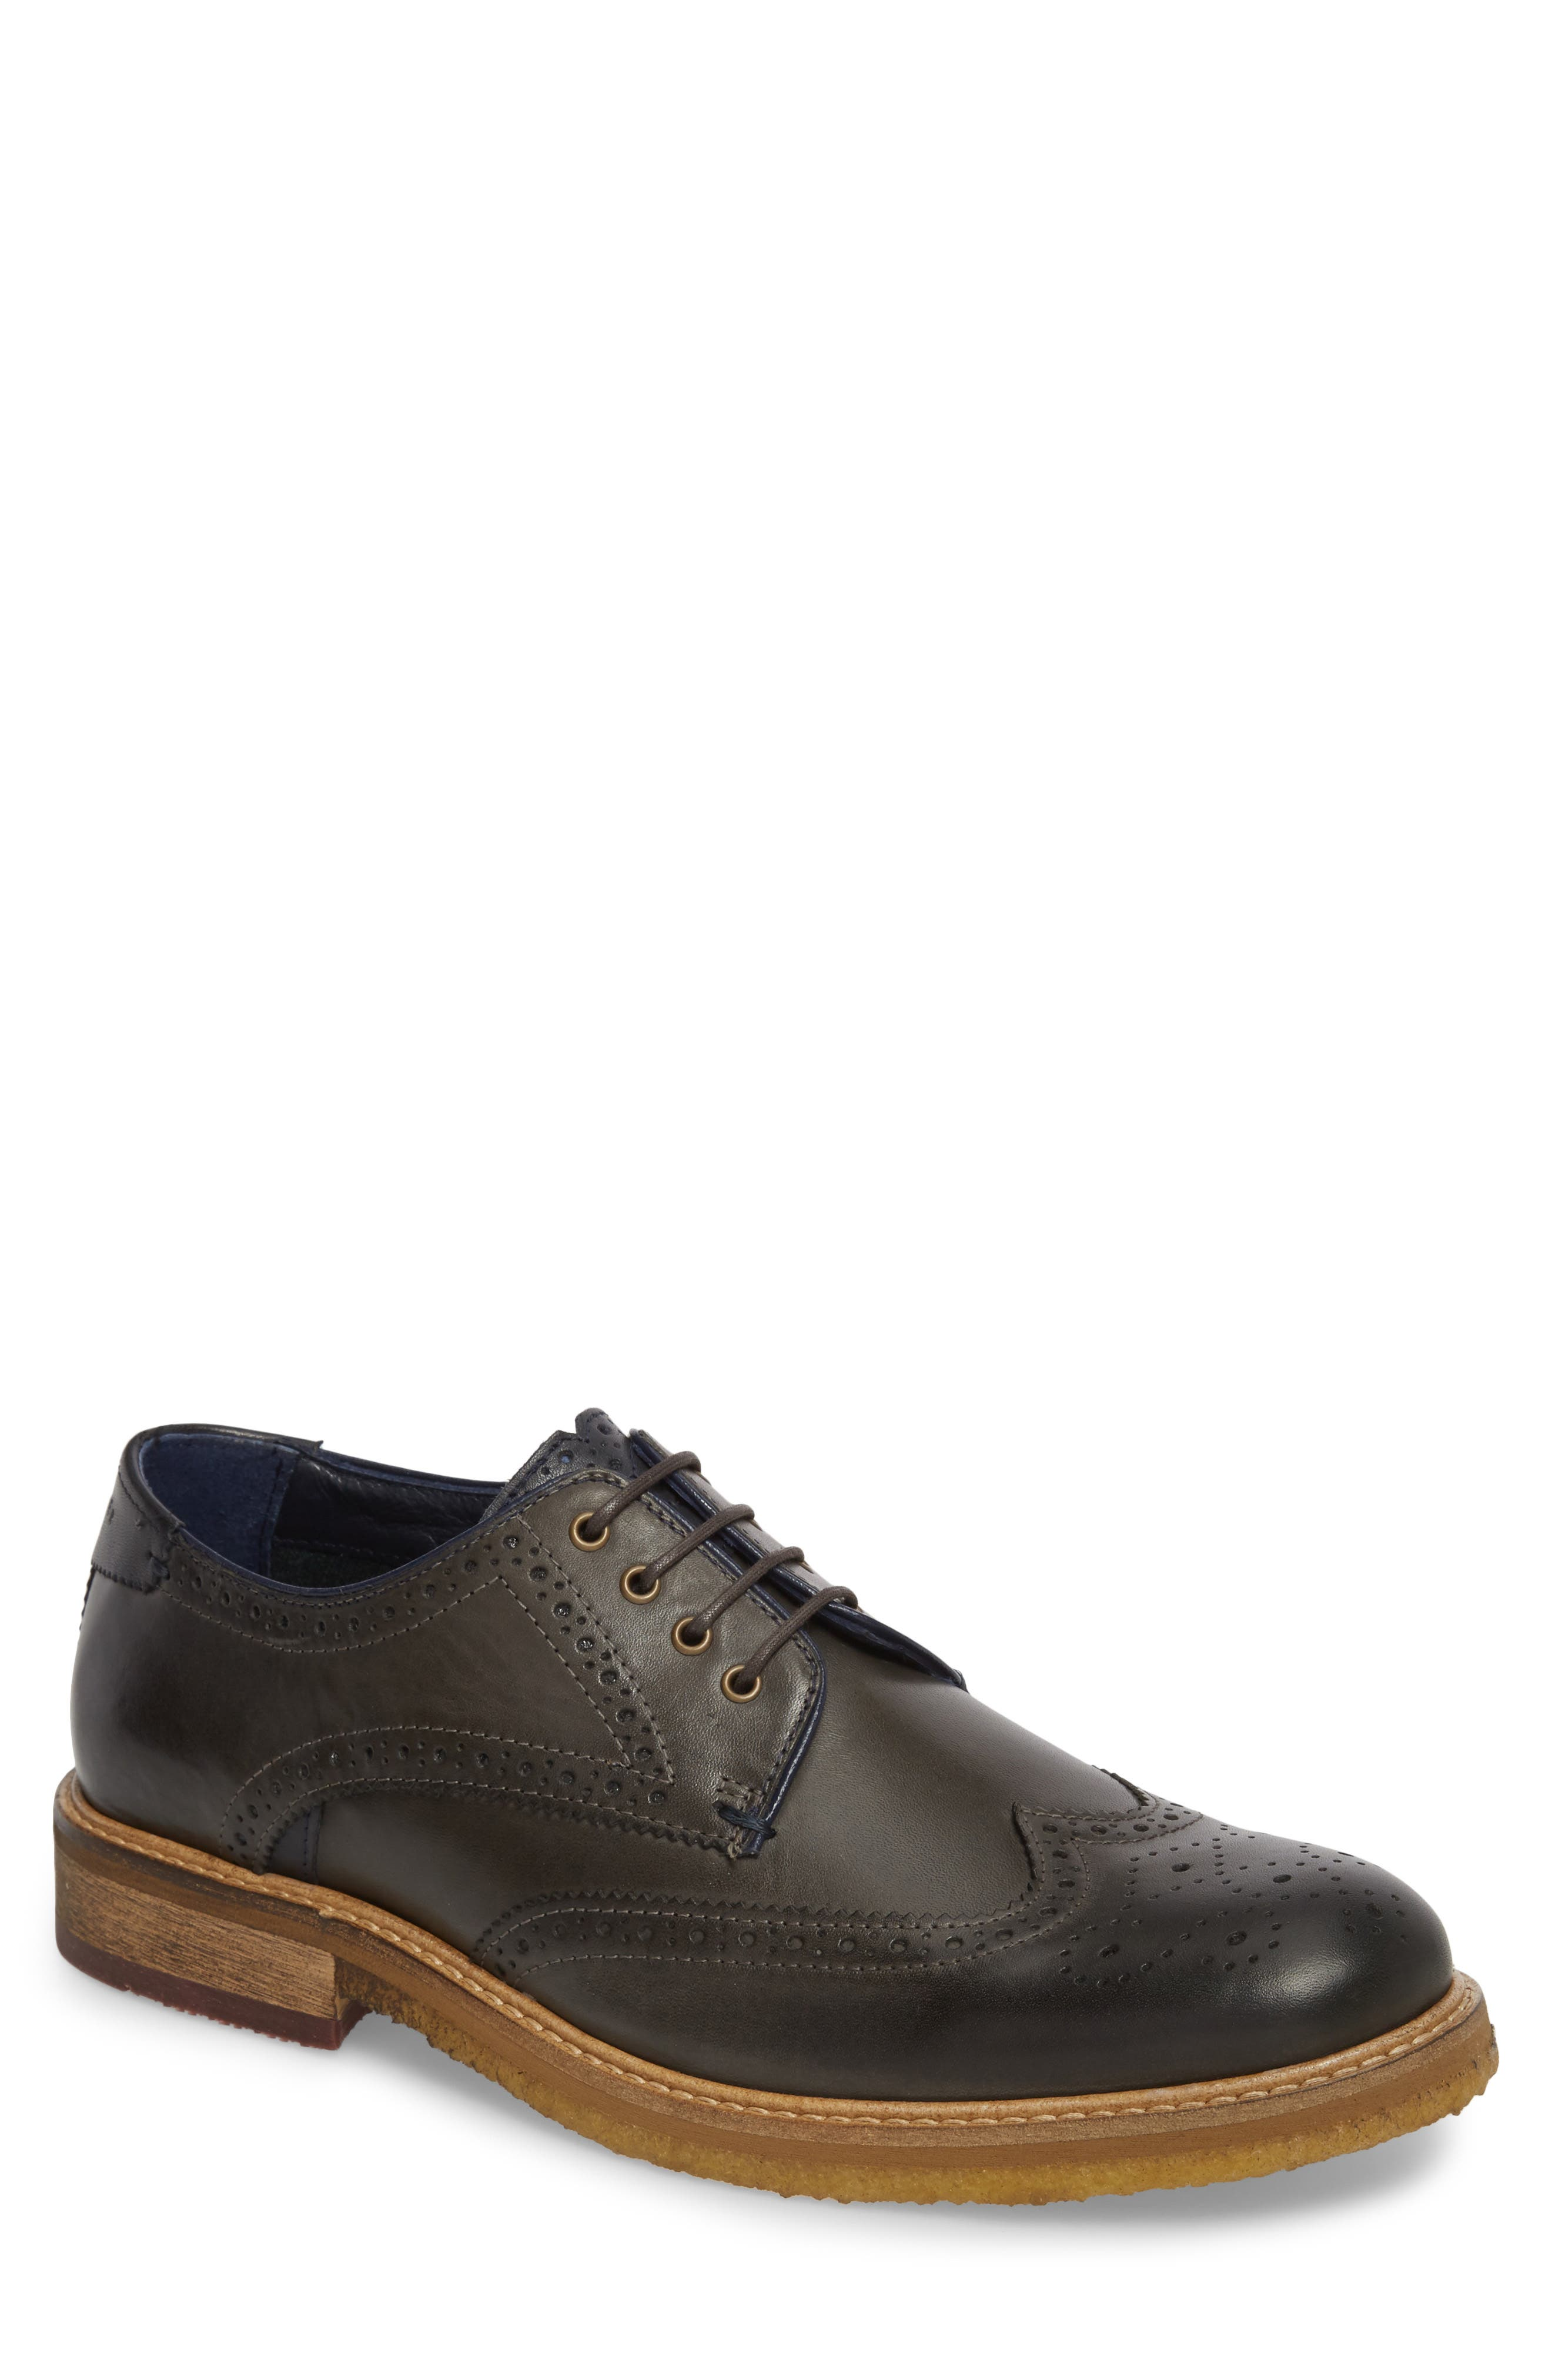 TED BAKER LONDON,                             Prycce Wingtip Derby,                             Main thumbnail 1, color,                             031